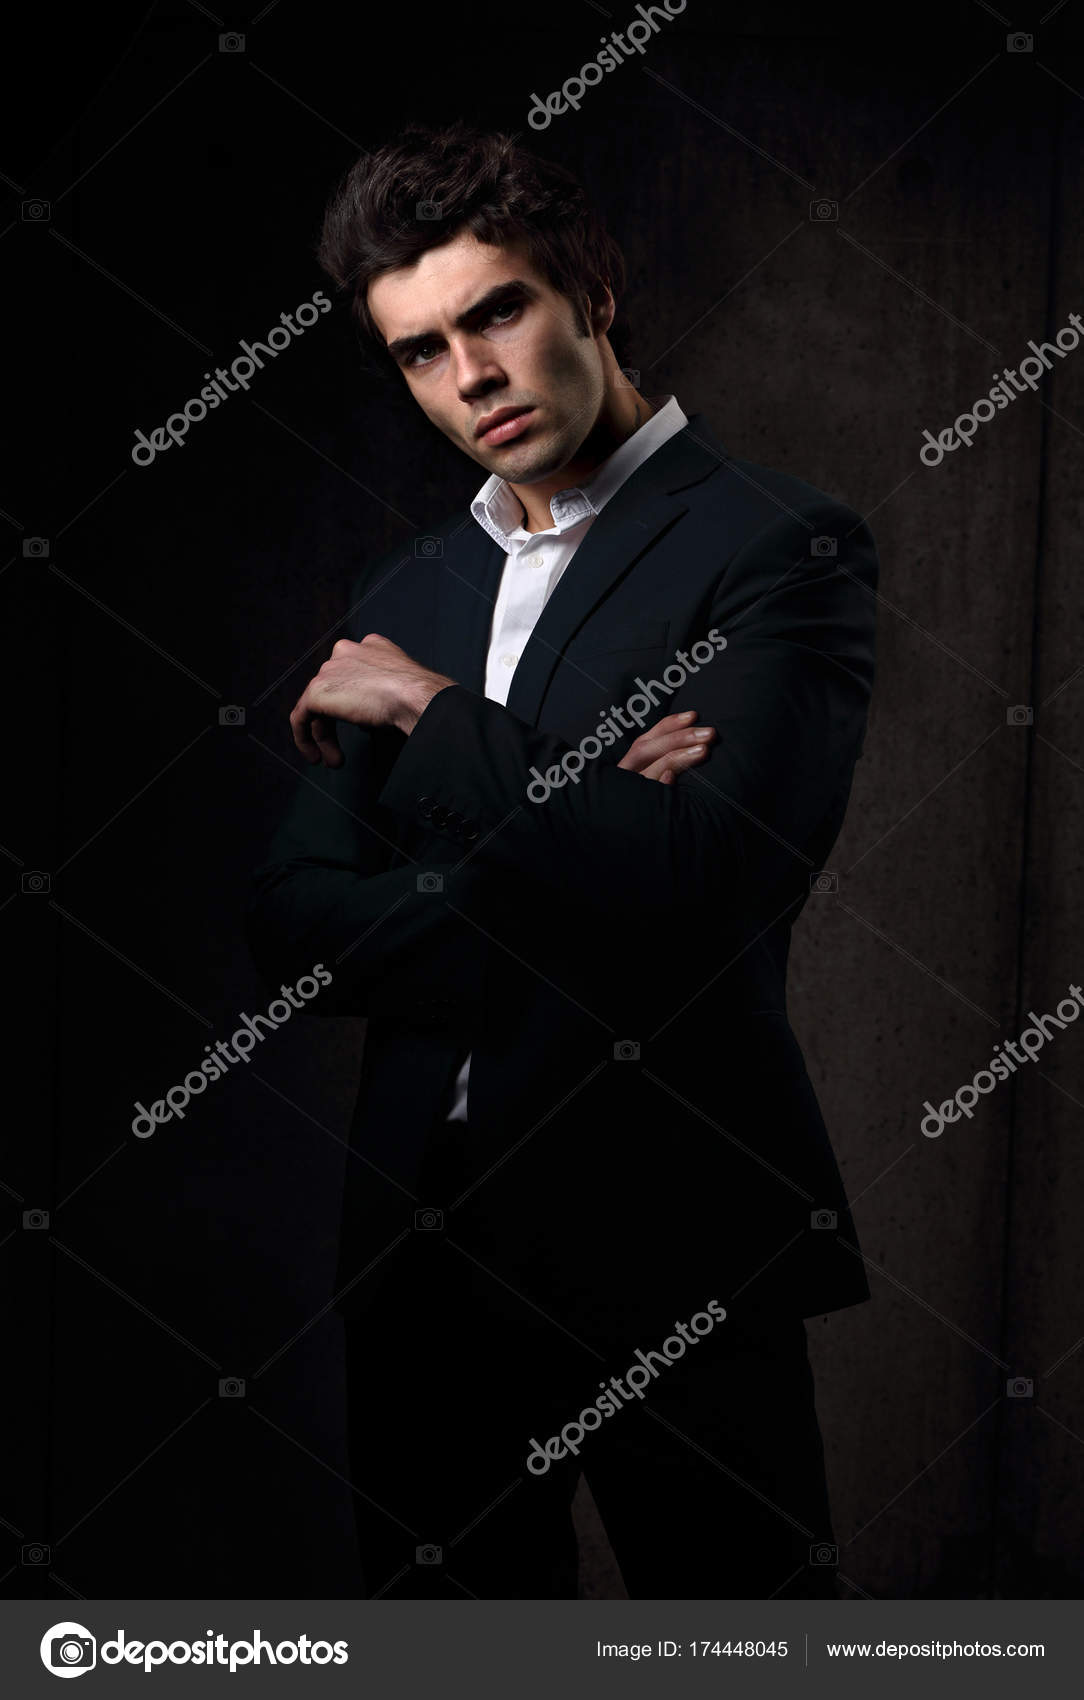 50386a80 Handsome male model posing in fashion suit and white style shirt looking on dark  shadow background.